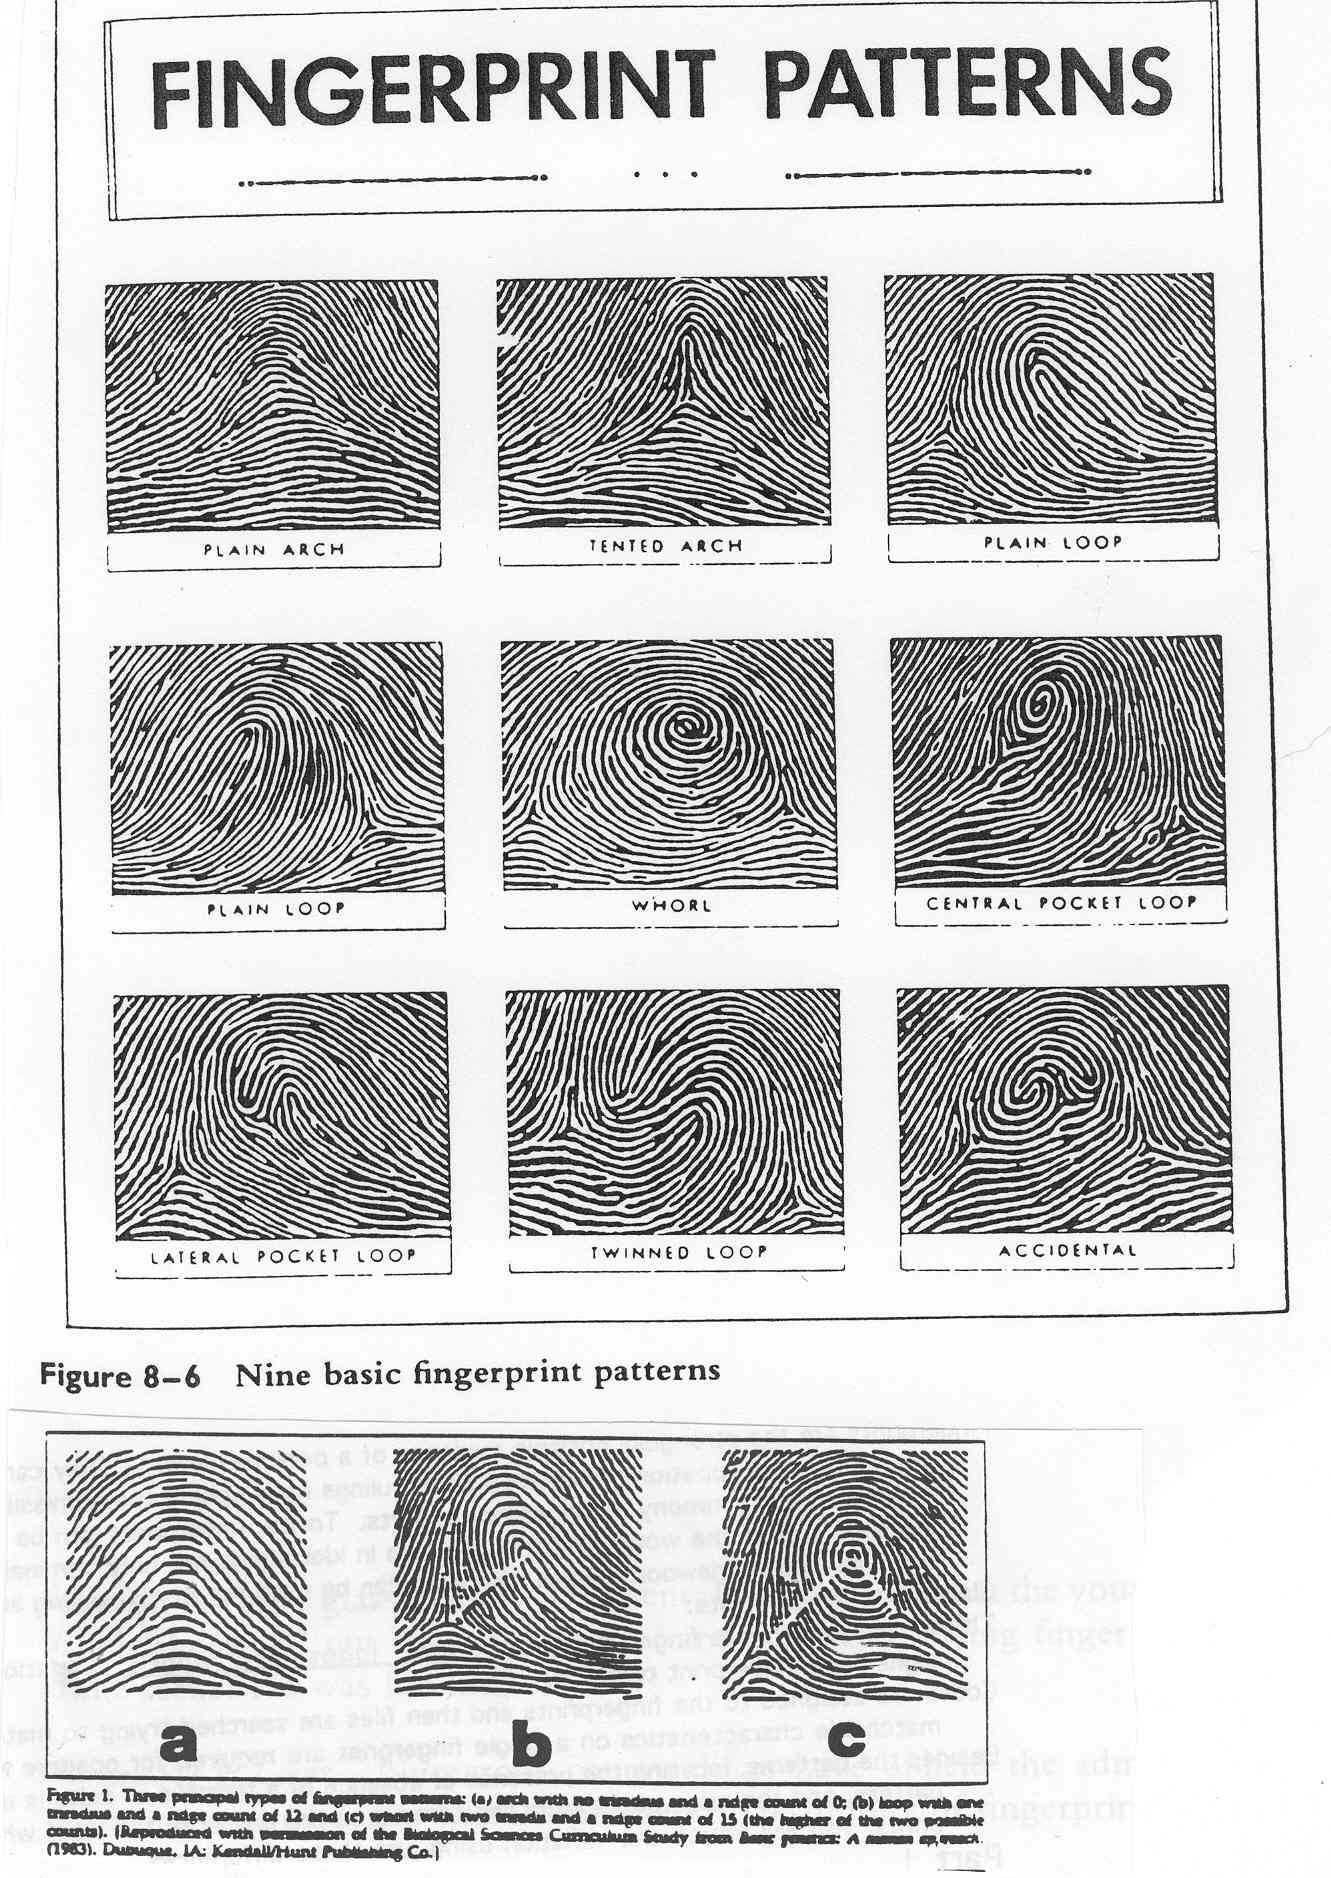 Fingerprints Patterns Very Fascinating With Images